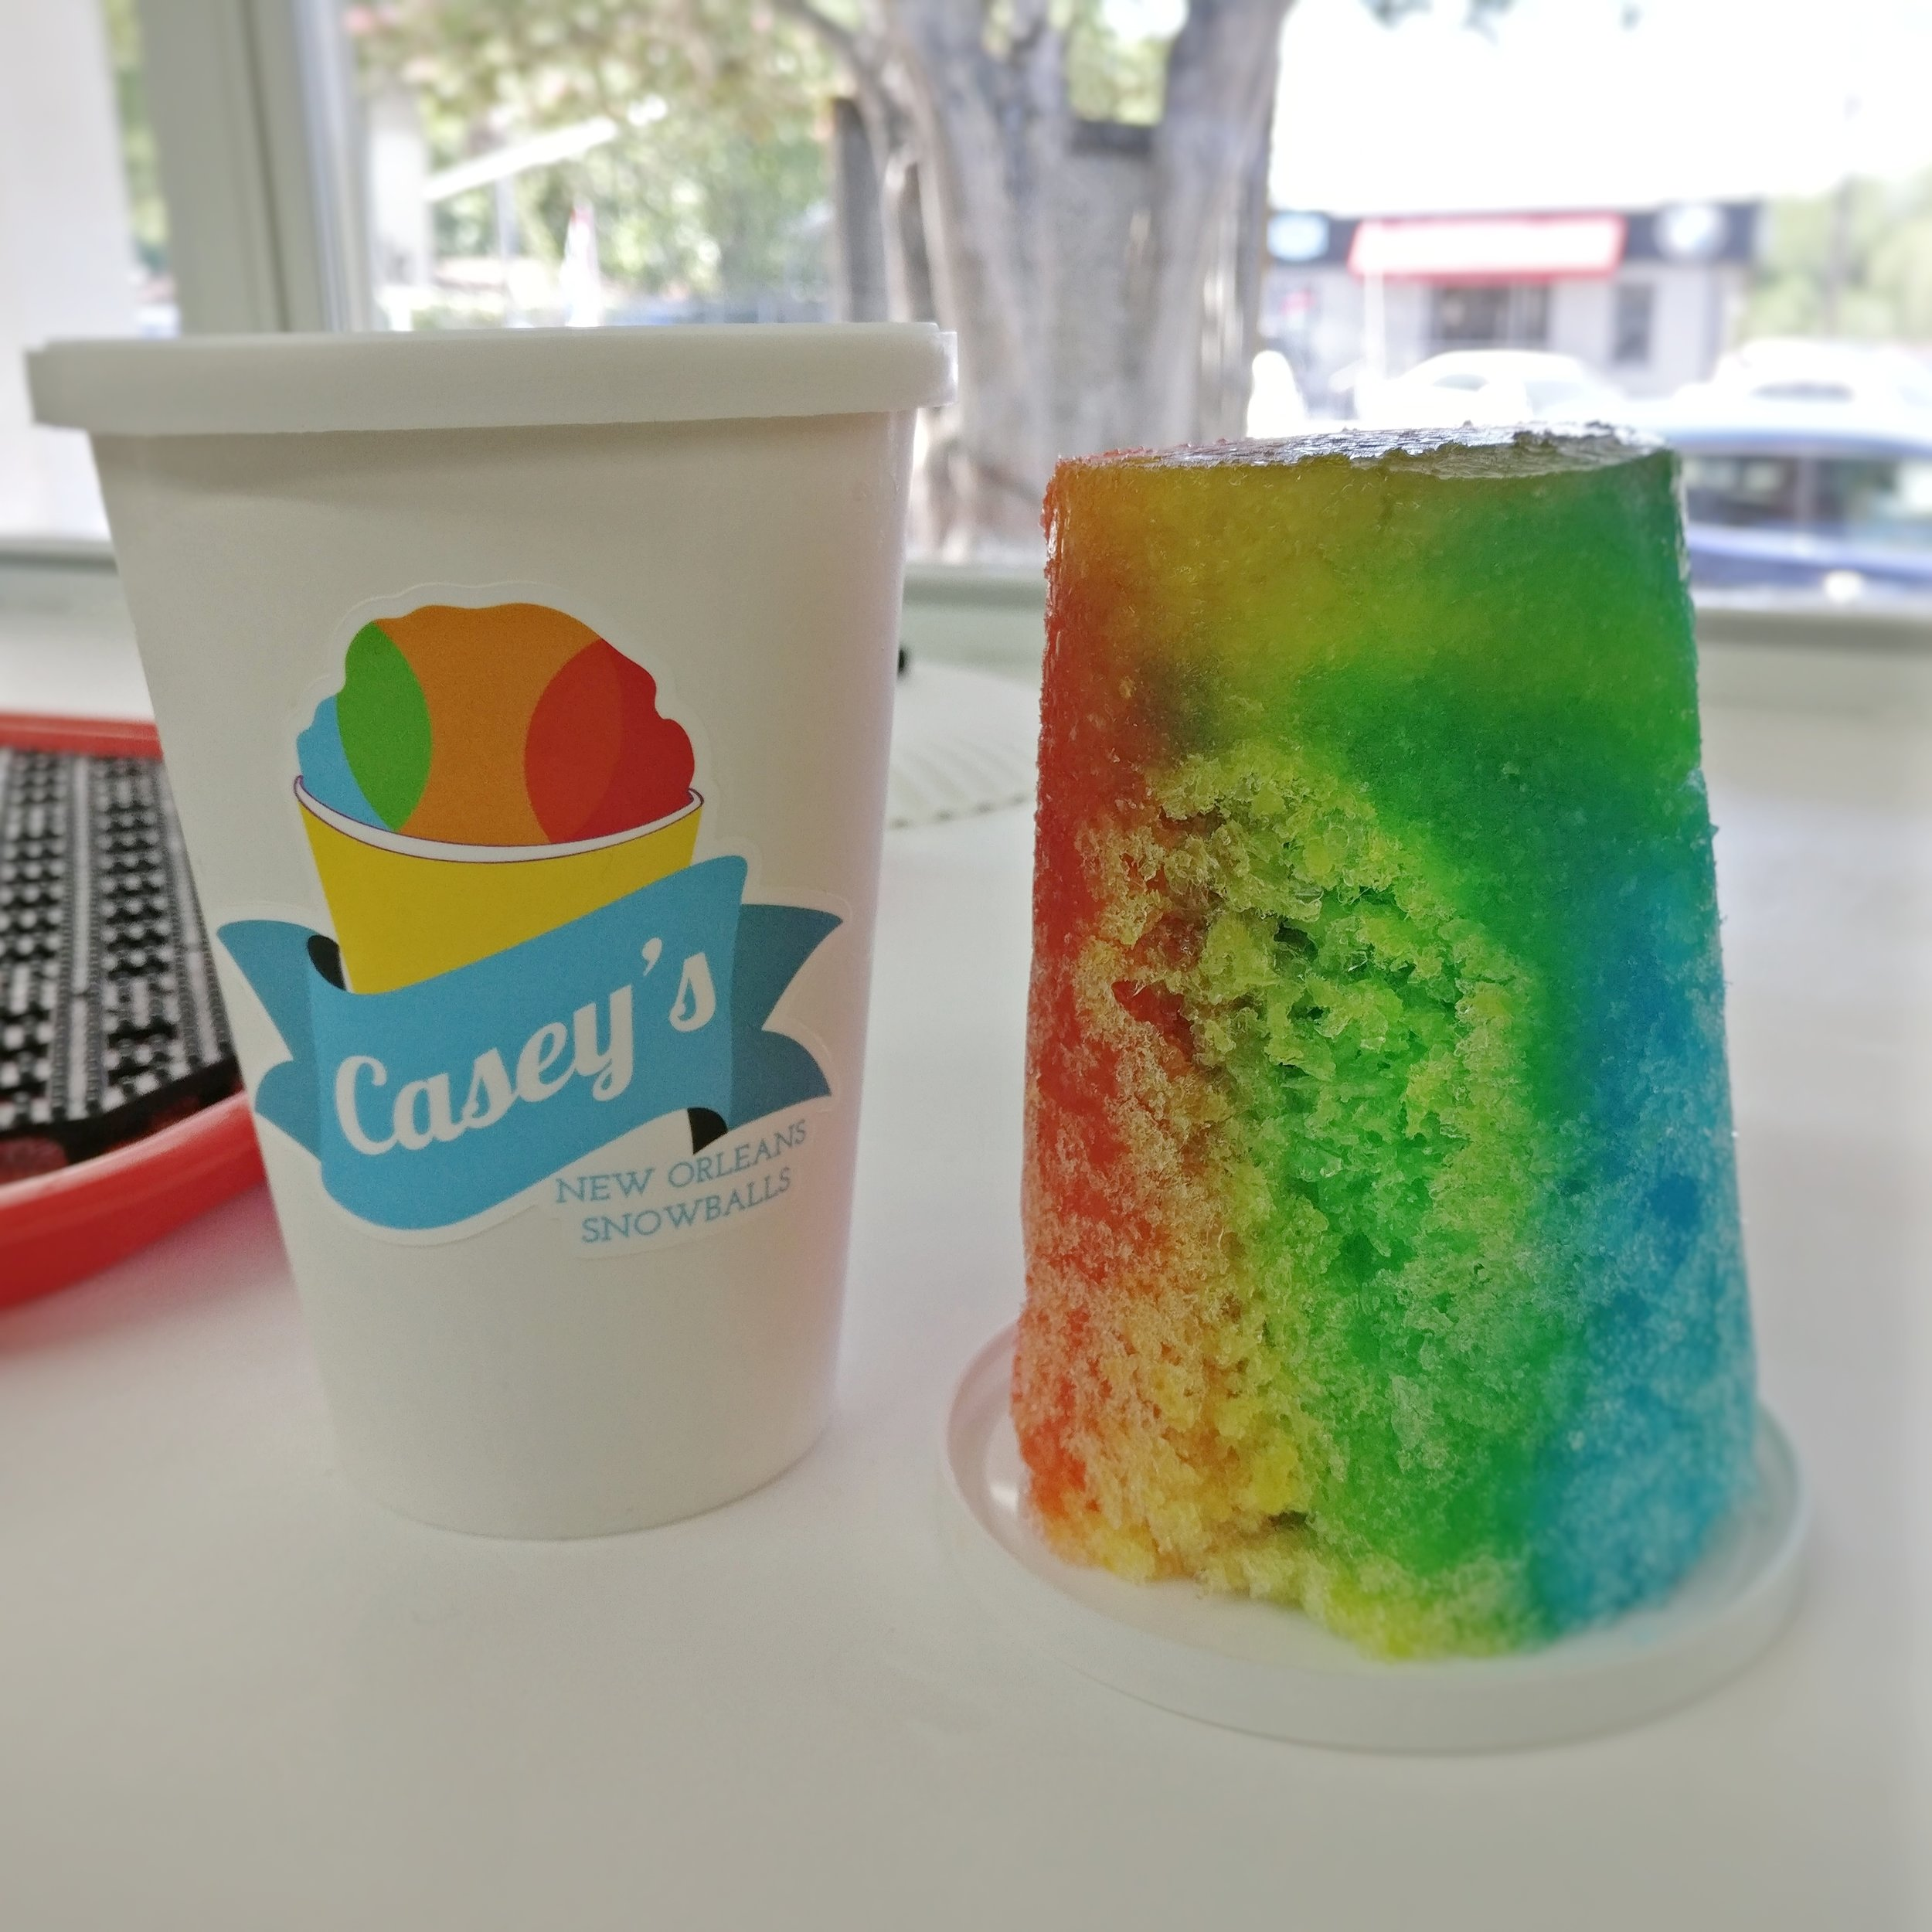 Pre-made snowballs: The same perfect product you love, but at your event.